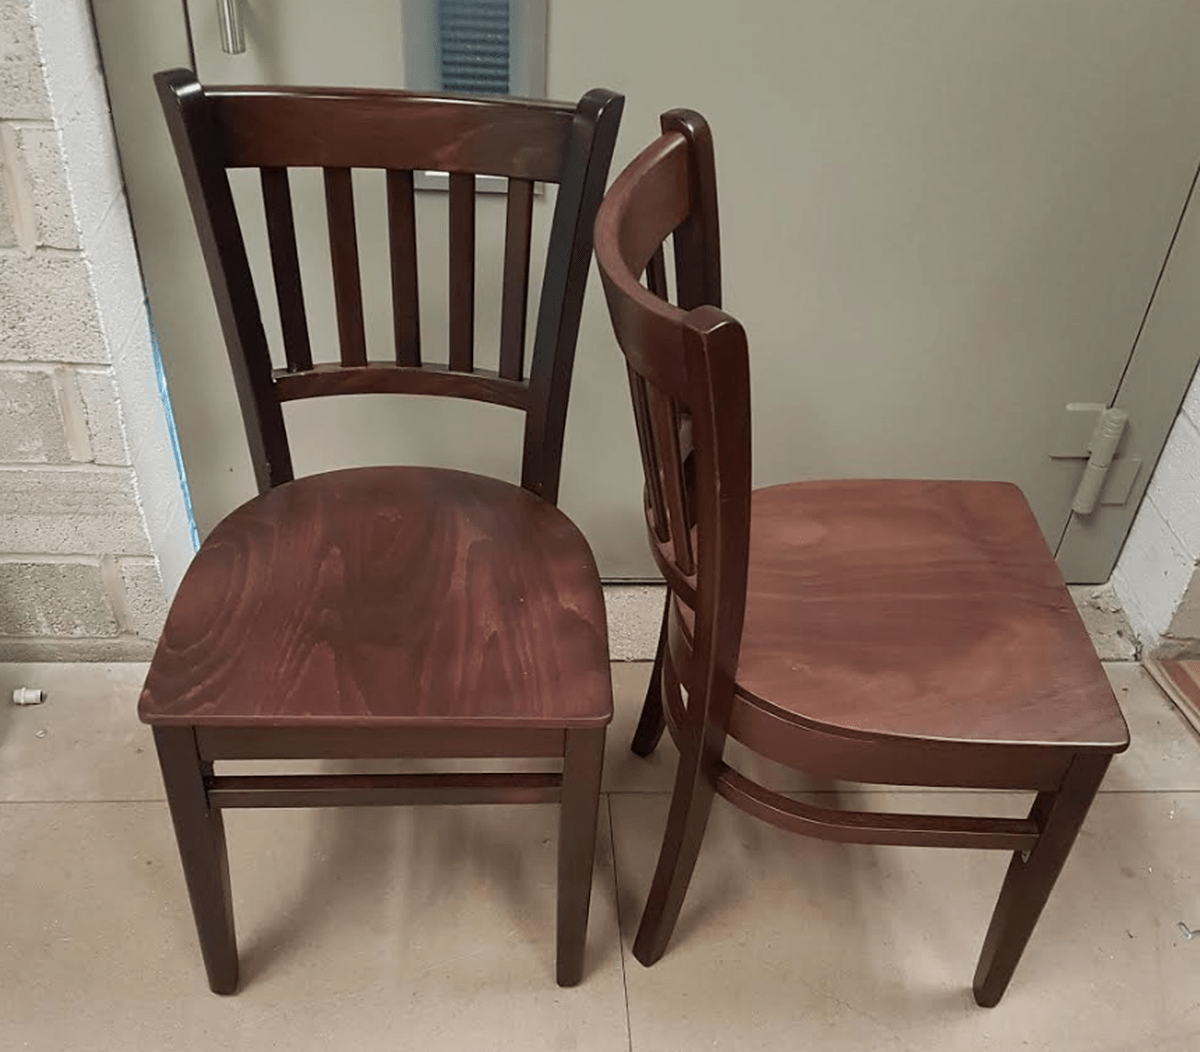 Restaurant Chairs For Sale Secondhand Chairs And Tables Restaurant Chairs 29x New